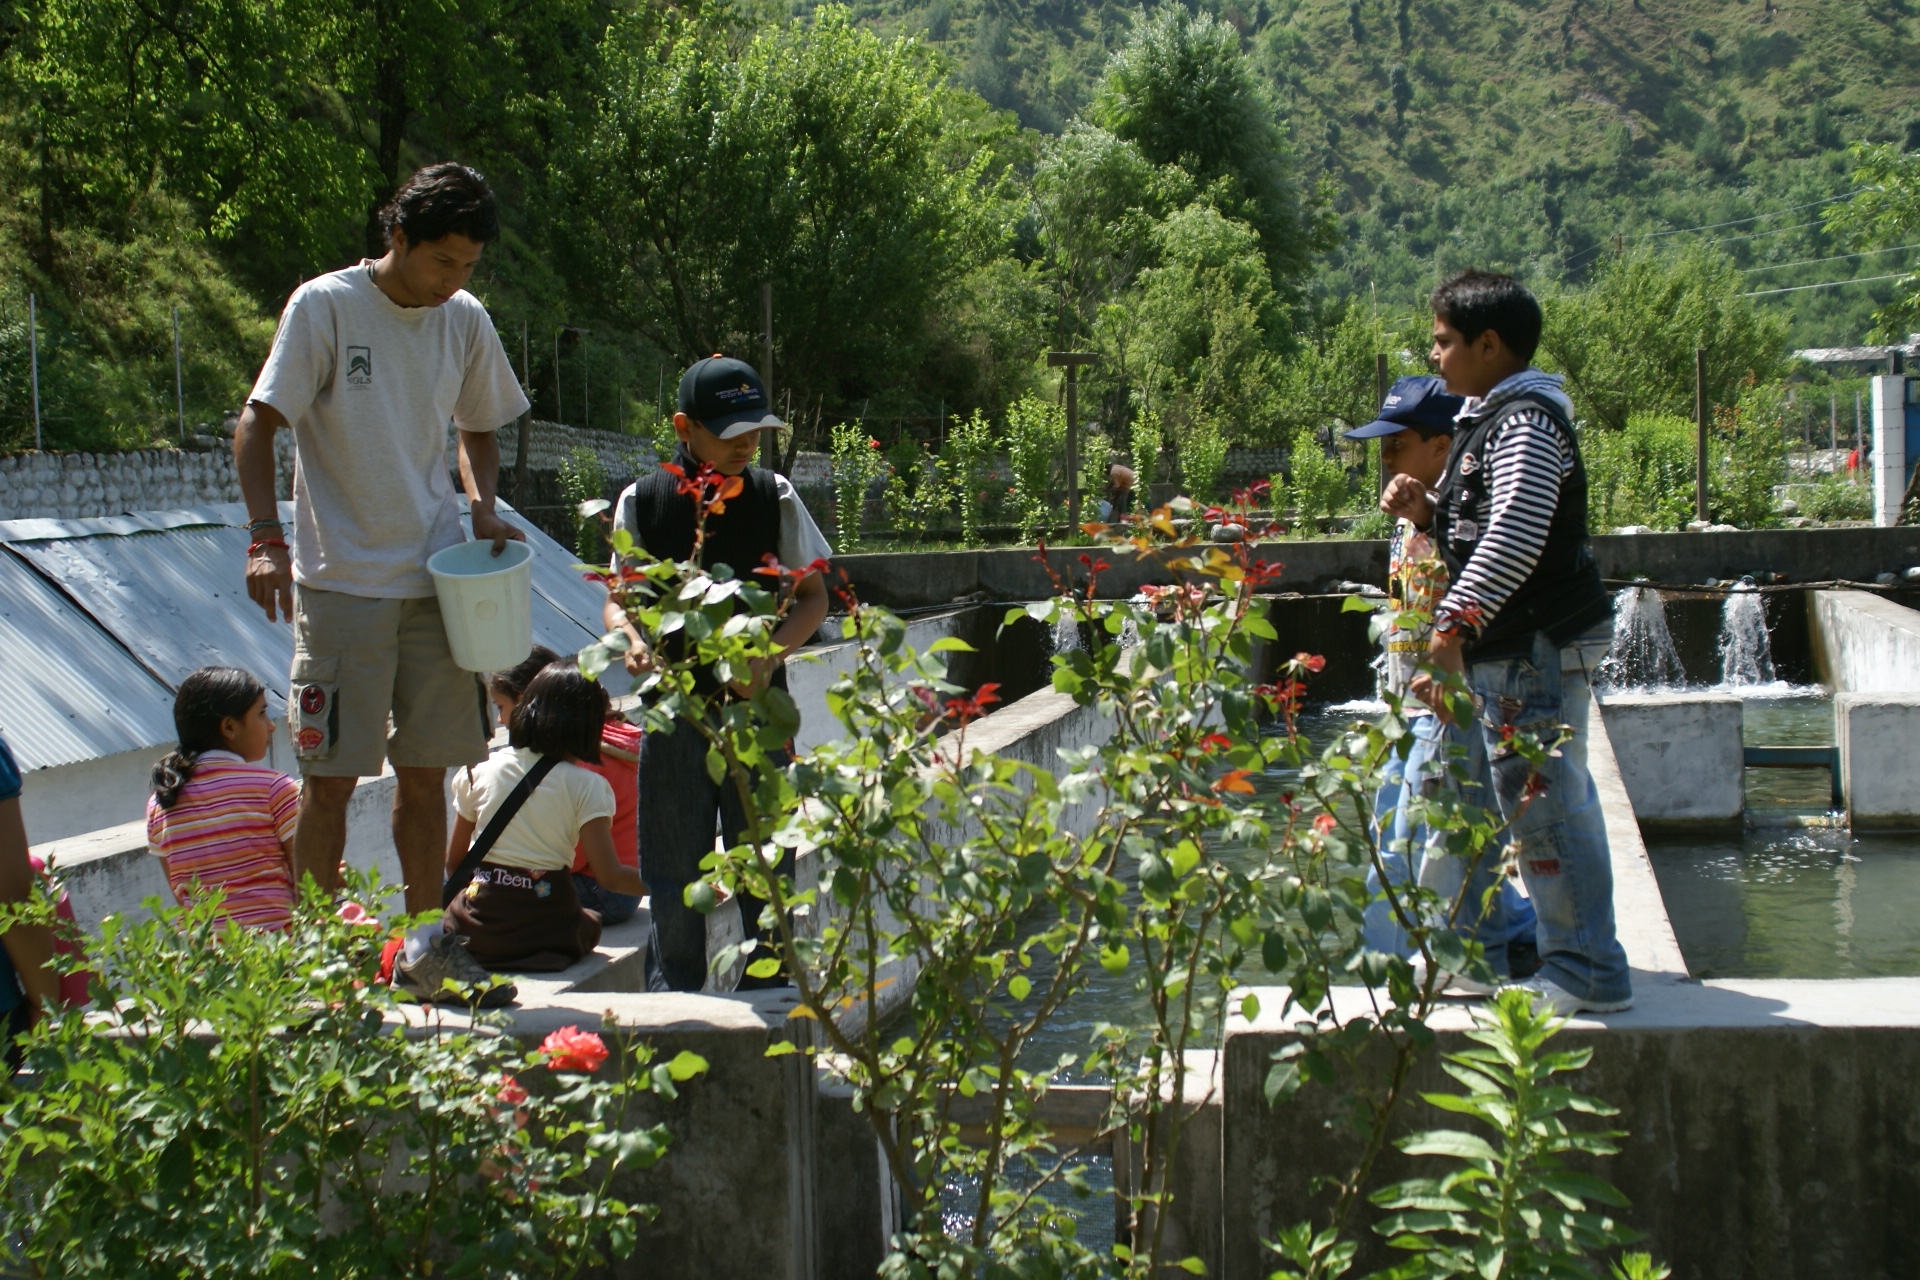 Camping Programme in Manali